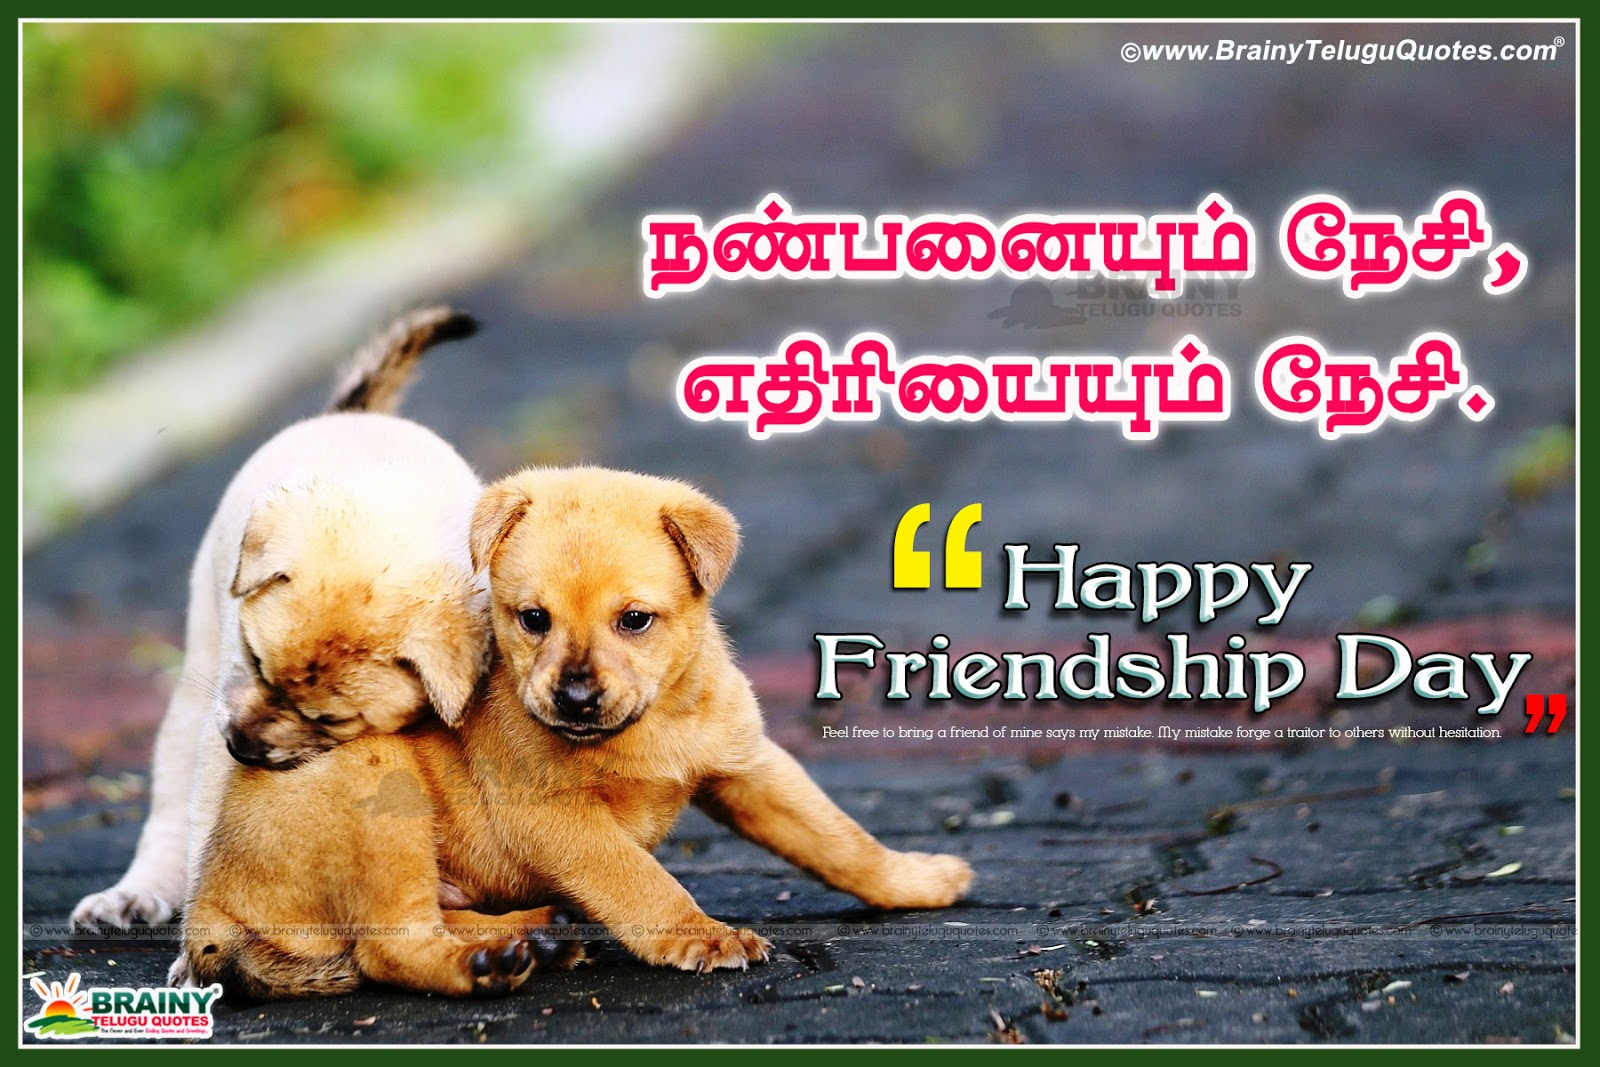 Inspiring Quotes About Friendship Cute Tamil Whatsapp Friendship Day Dp Images Greetings And Quotes